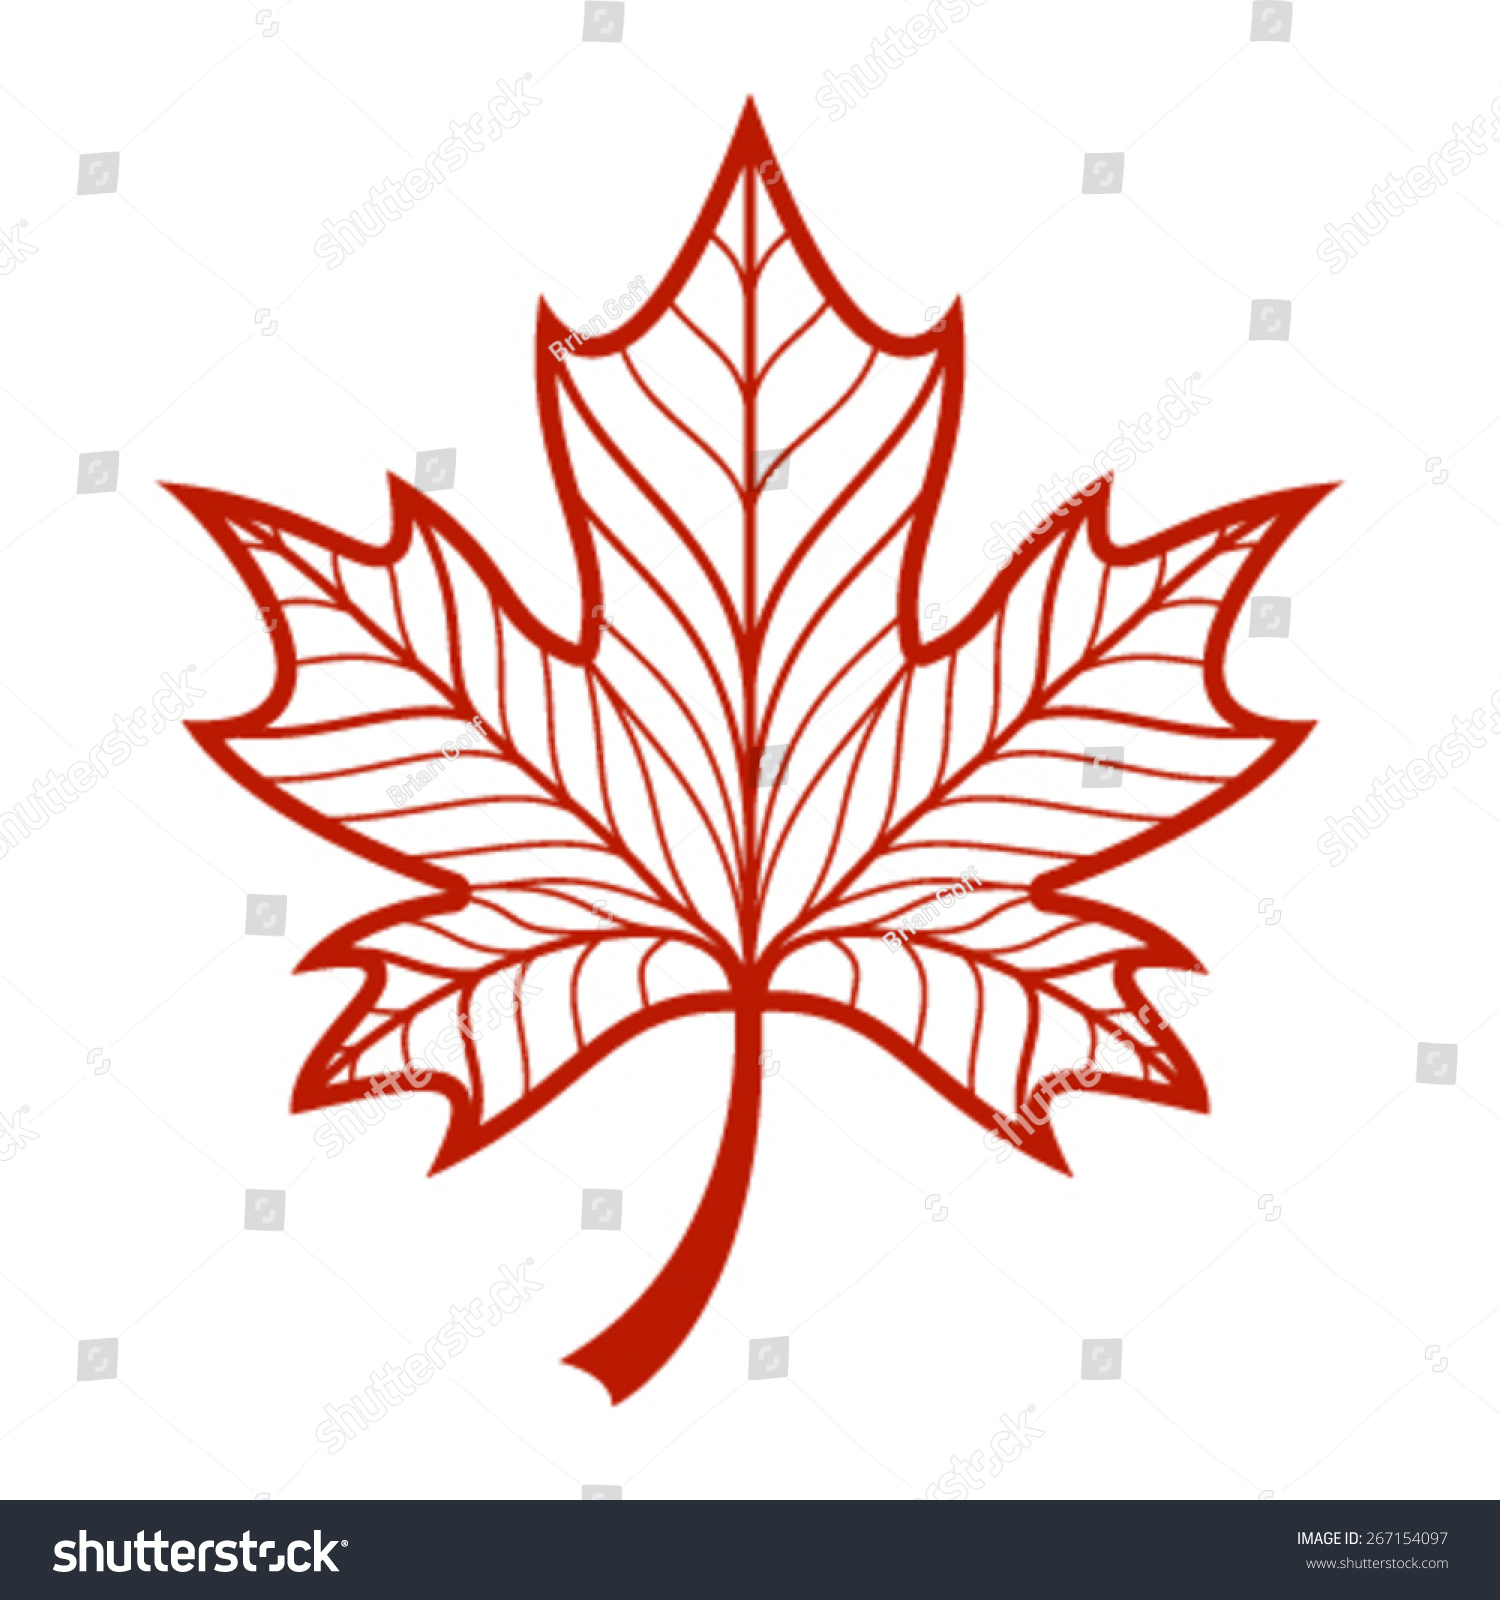 Maple Leaf Vector Icon Stock Vector 267154097 - Shutterstock